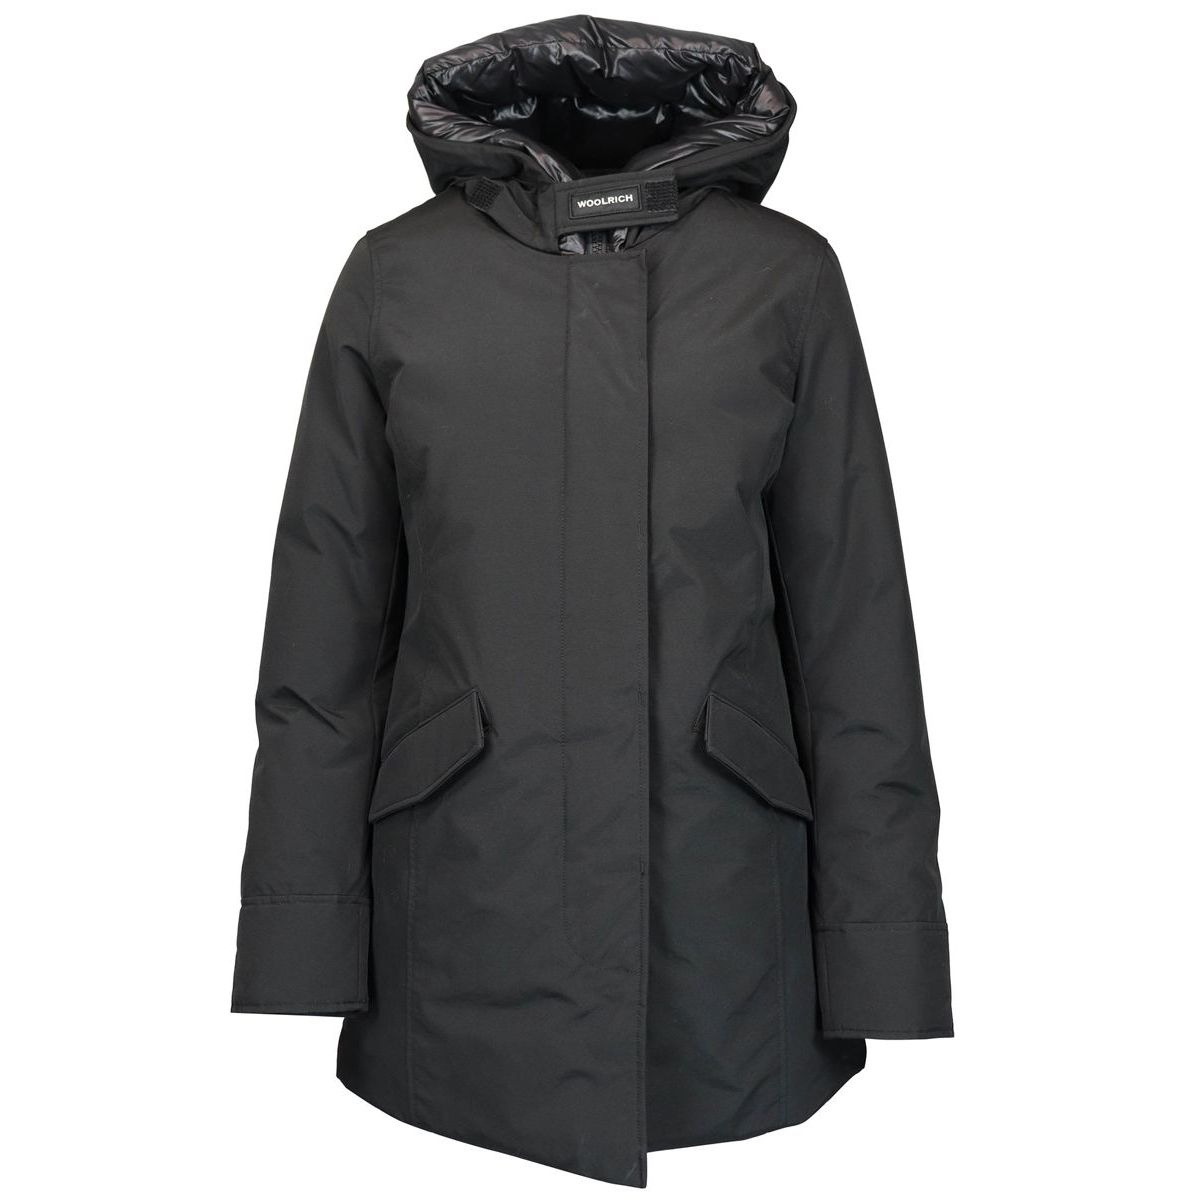 PARKA ARTIC with hood Black Woolrich